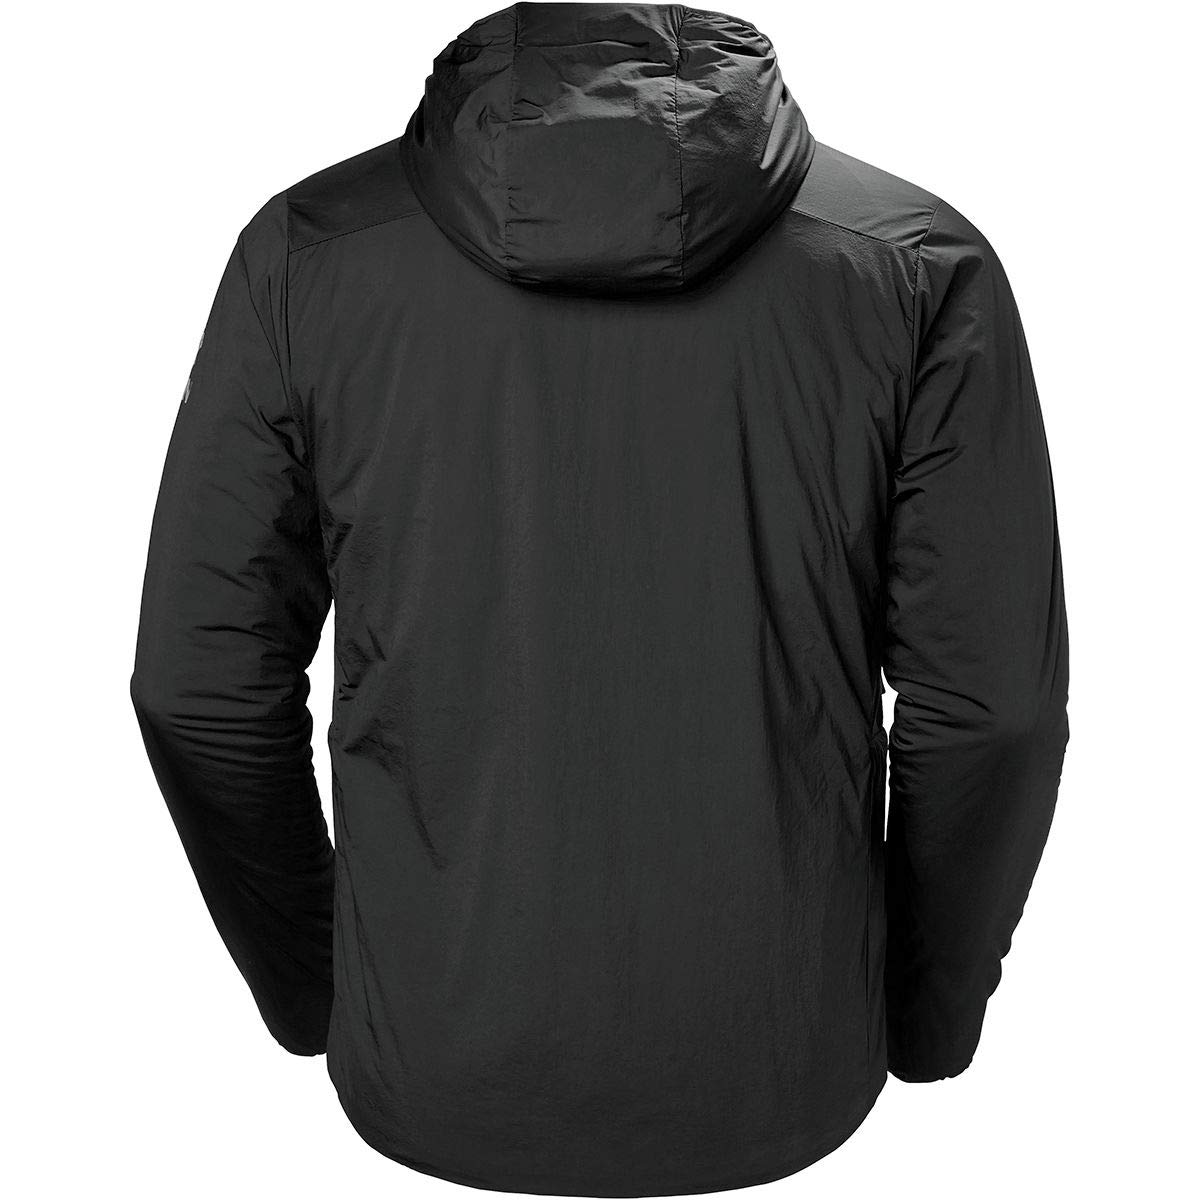 Amazon.com: Helly Hansen 62833 Mens Odin Stretch Insulated Jacket: Clothing